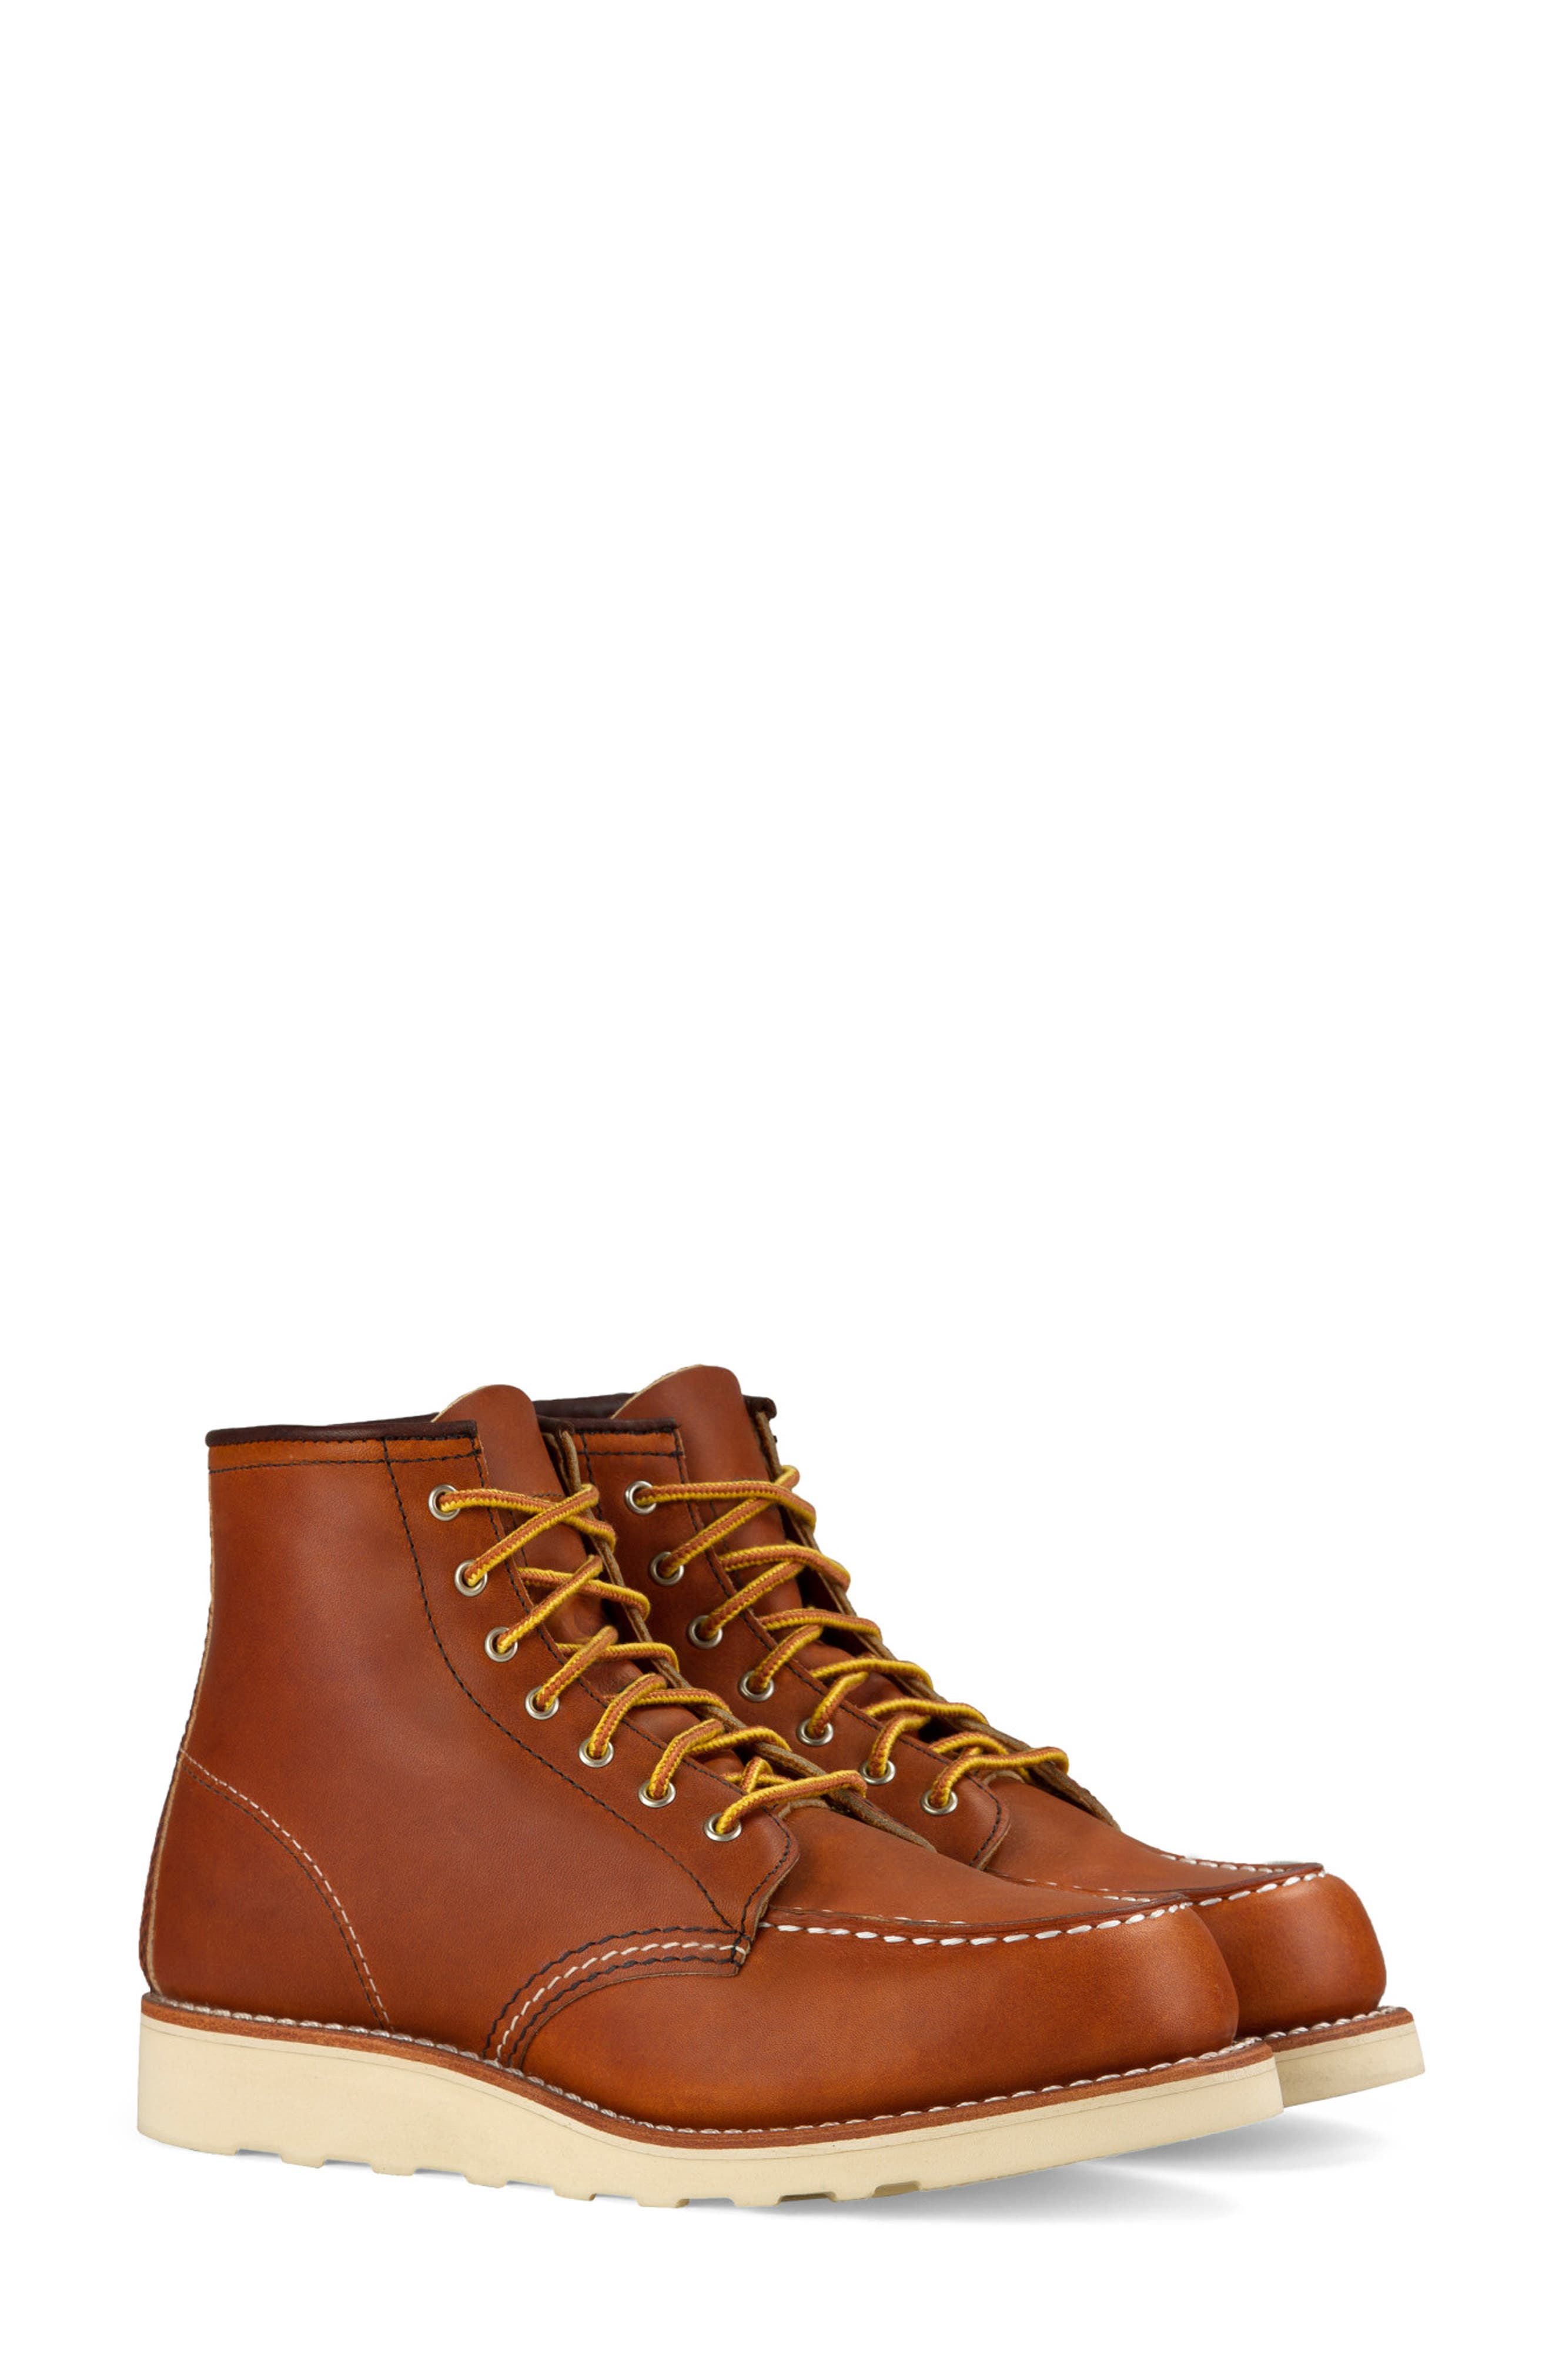 RED WING 6-Inch Moc Boot in Oro Legacy Leather